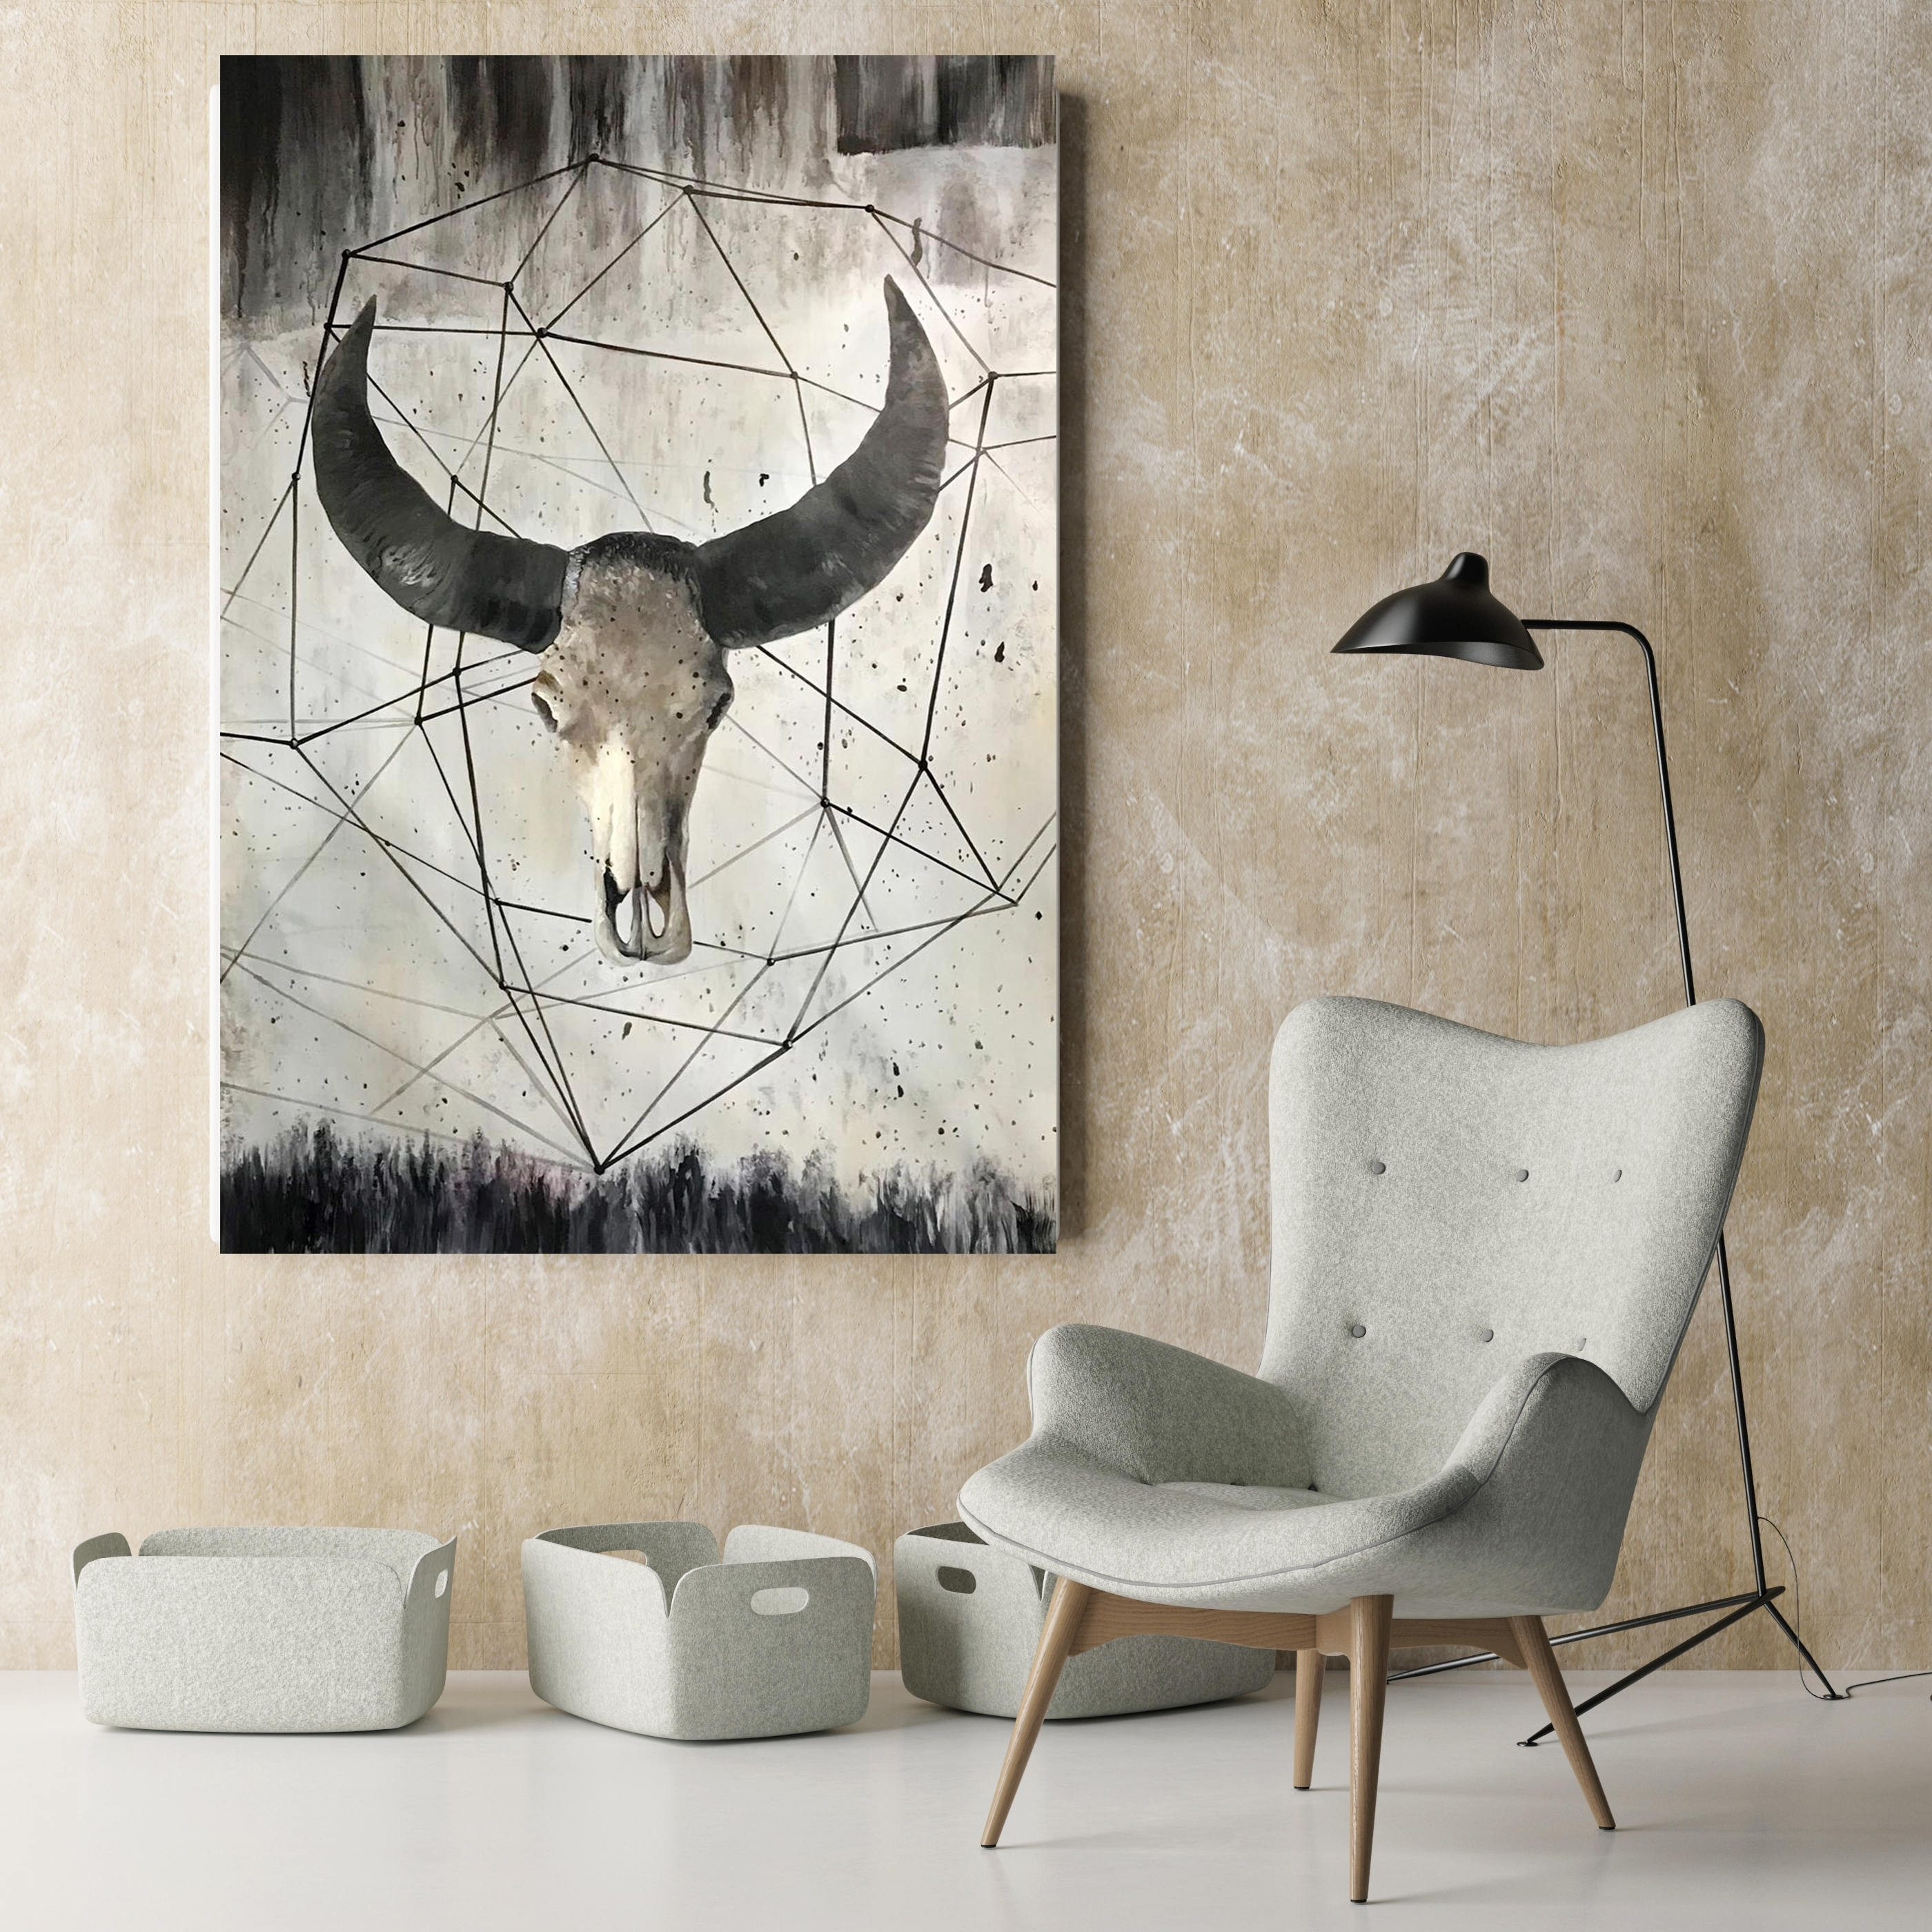 Orl 9981 12 Buffalo Skull 2. Extra Large Rustic Buffalo Skull Pertaining To Latest Rustic Canvas Wall Art (Gallery 11 of 15)